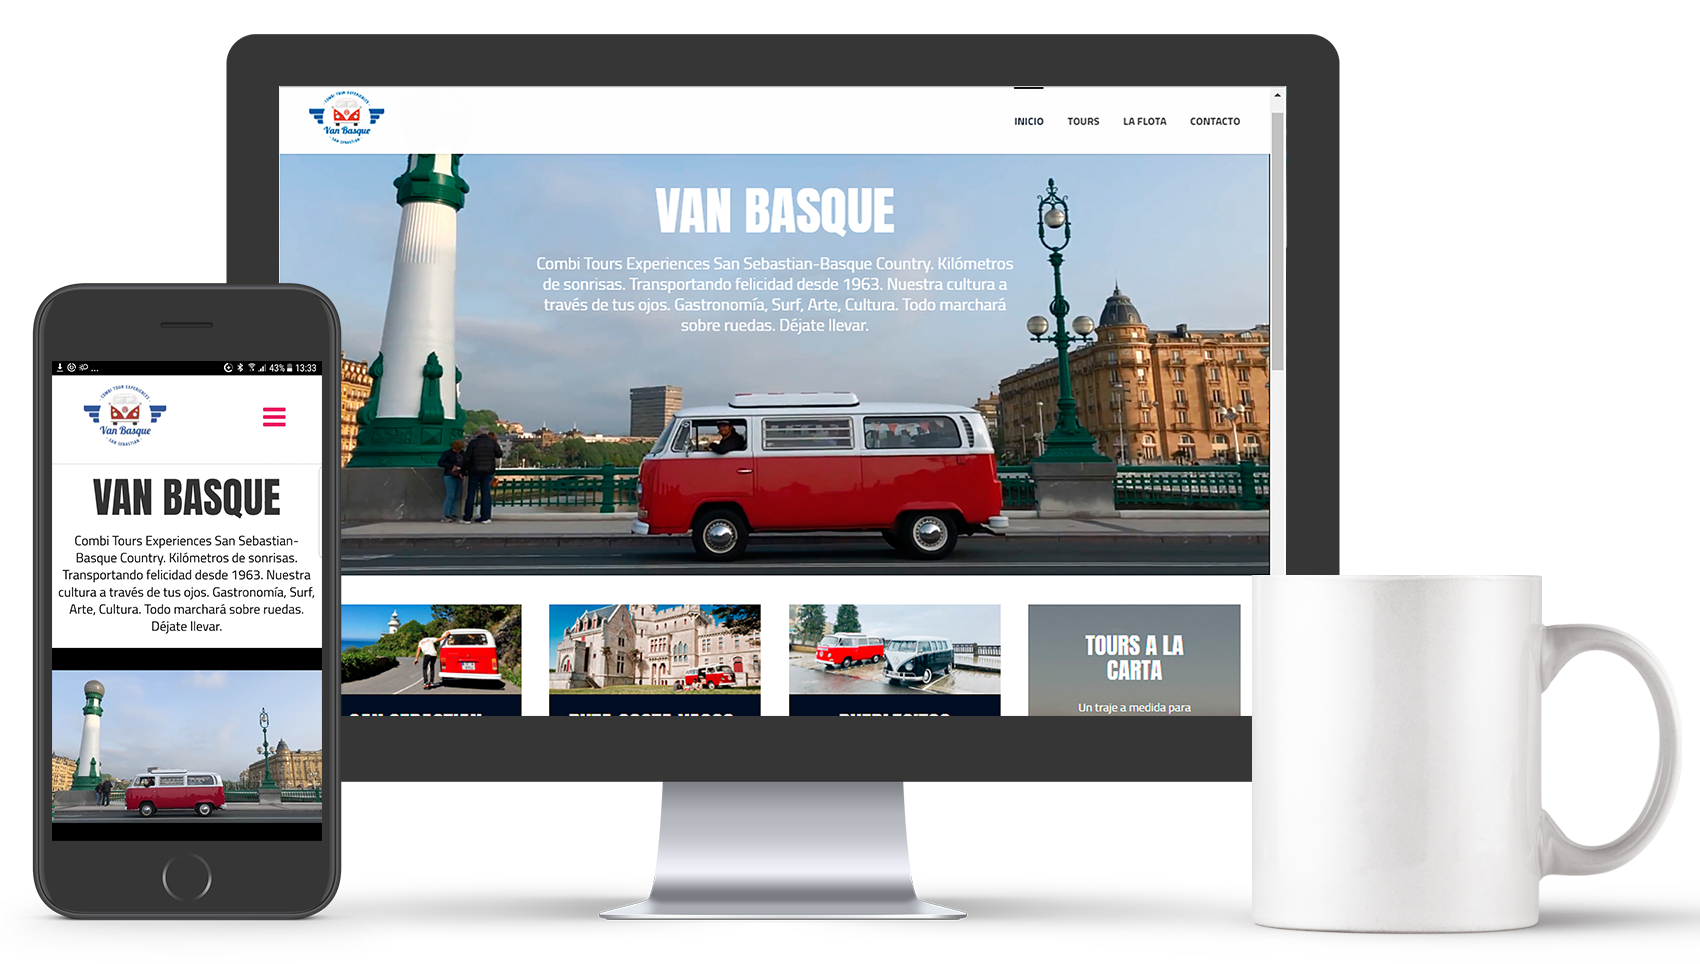 Van Basque web